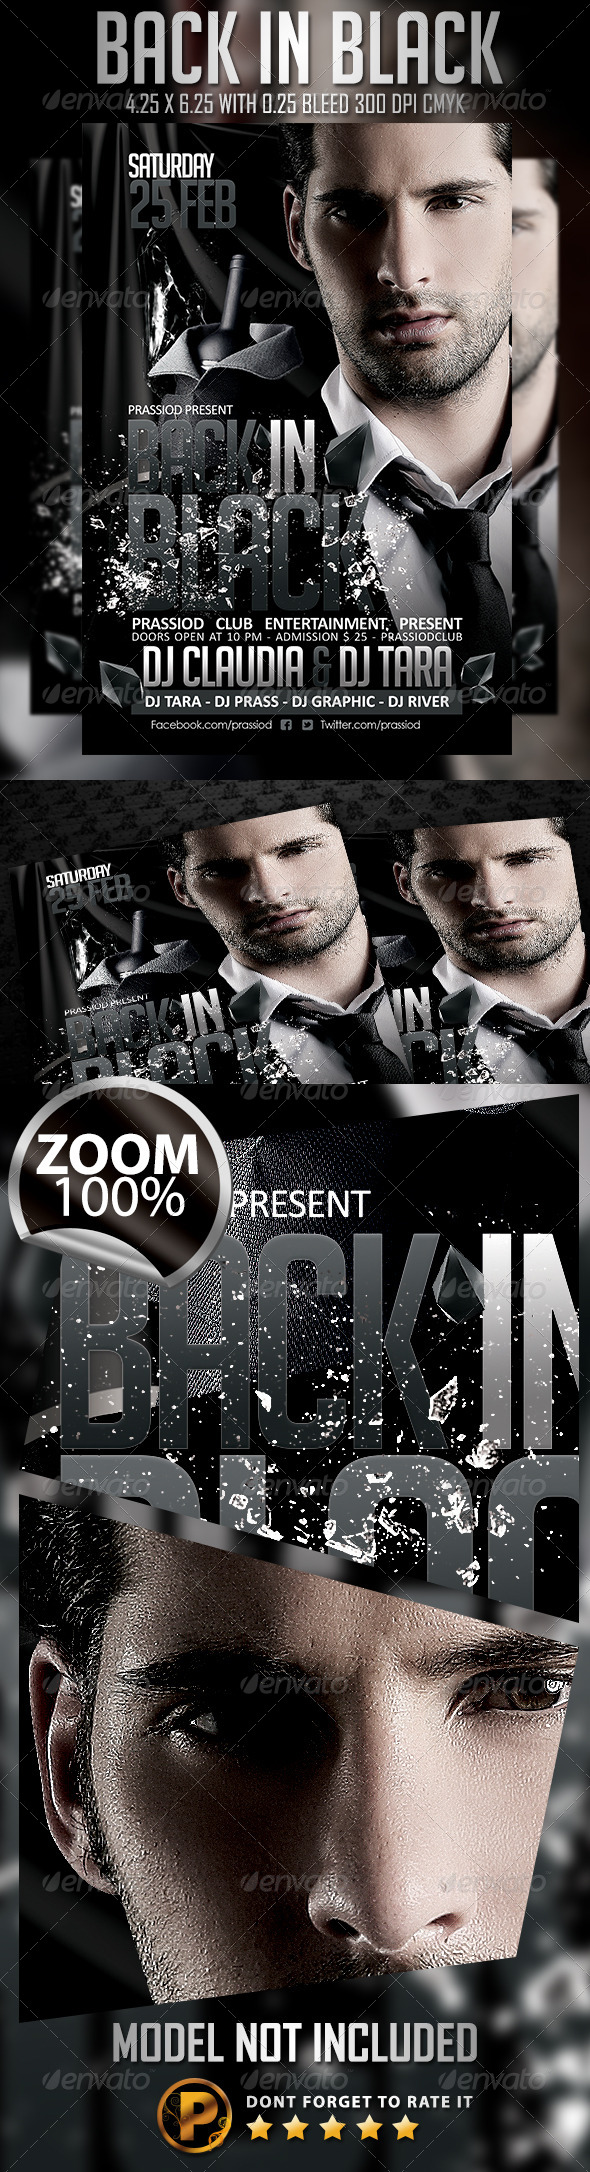 Back In Black Flyer Template - Clubs & Parties Events